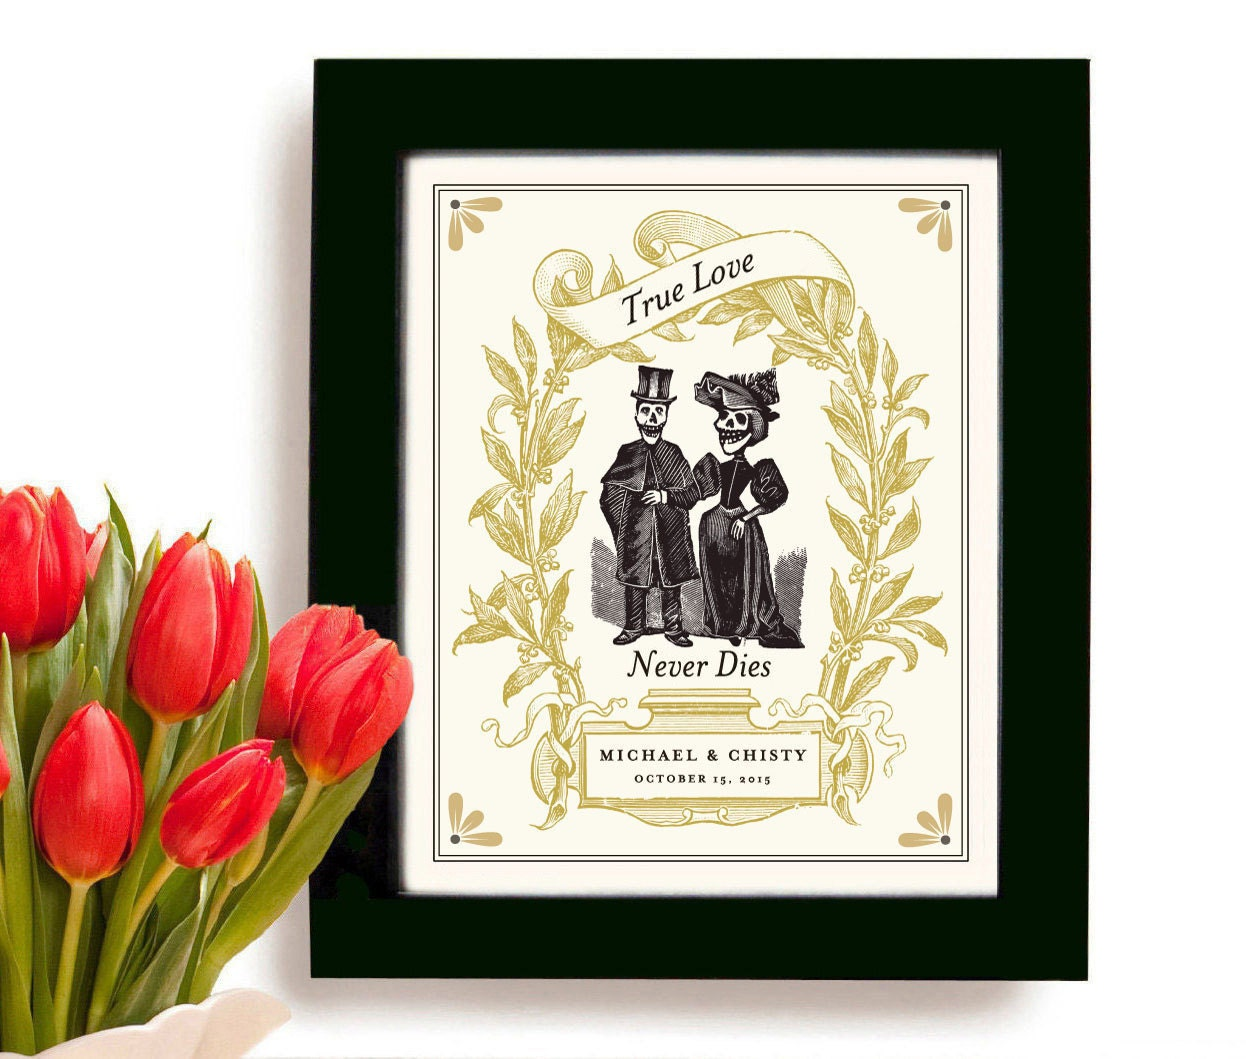 Unique Wedding Gifts For Couples: Unique Wedding Gift For Couples Personalized Art Print Day Of